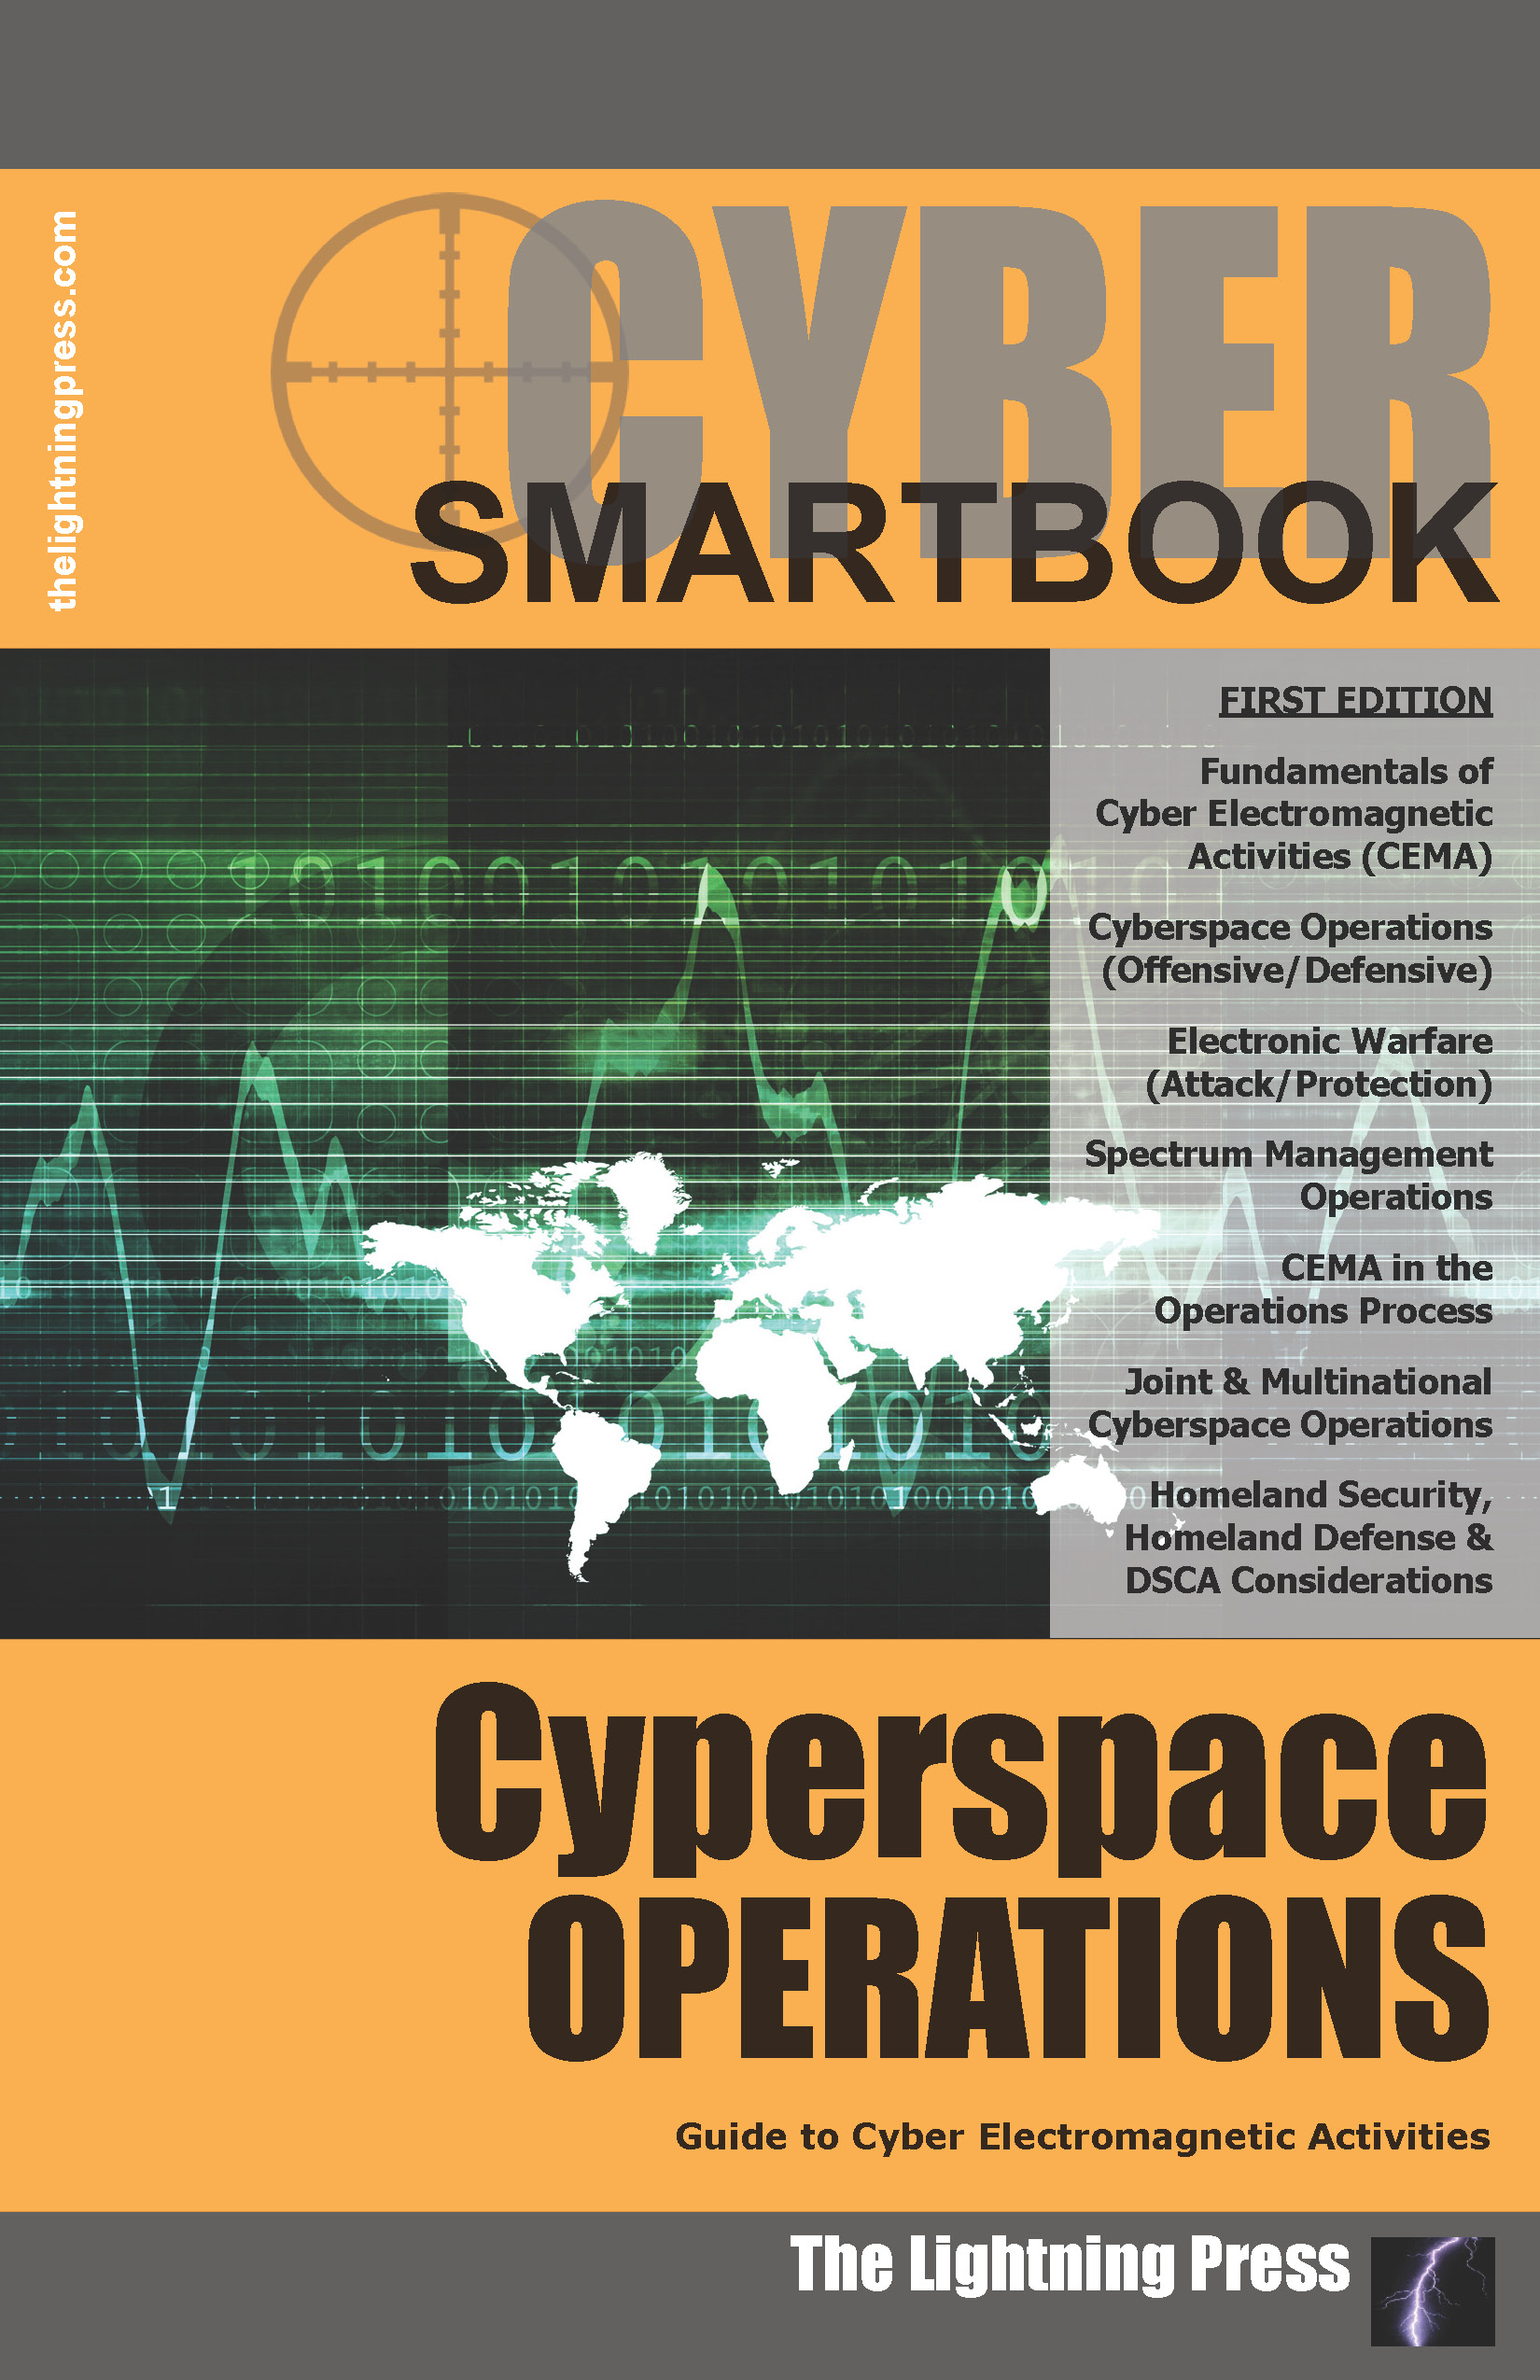 CYBER: The Cyberspace Operations SMARTbook